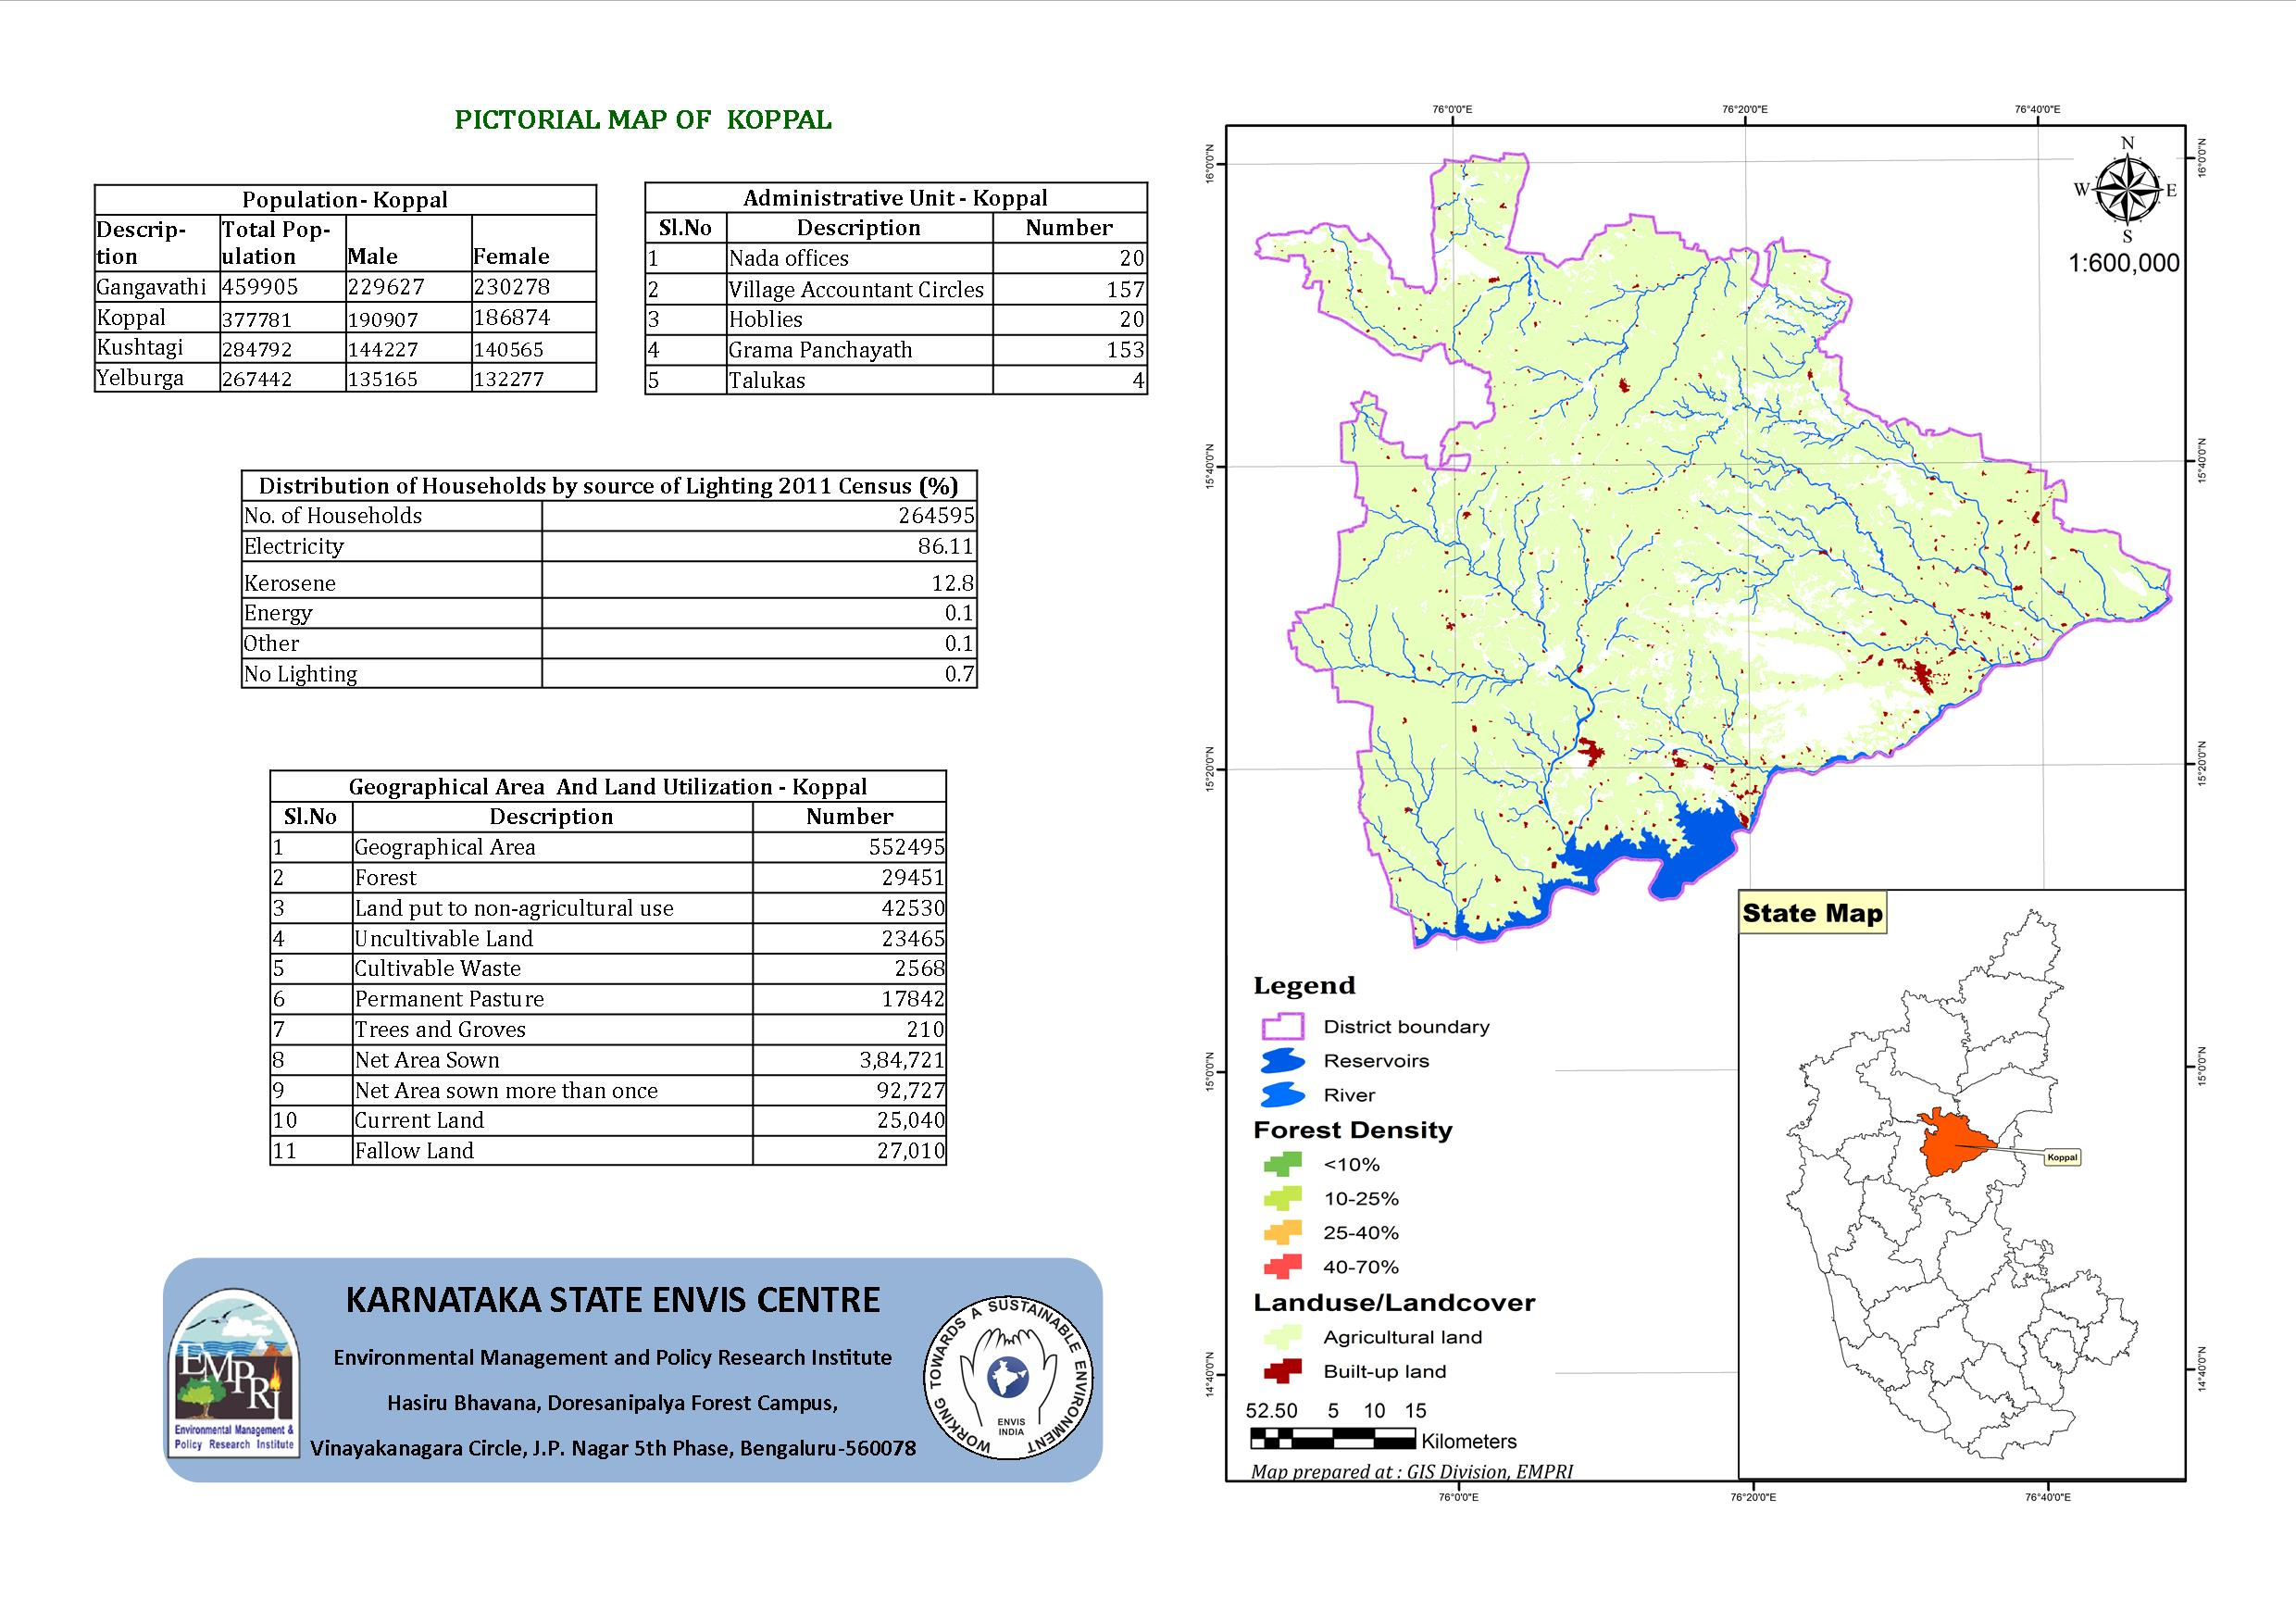 DISTRICT WISE THEMATIC MAPS of KARNATAKA